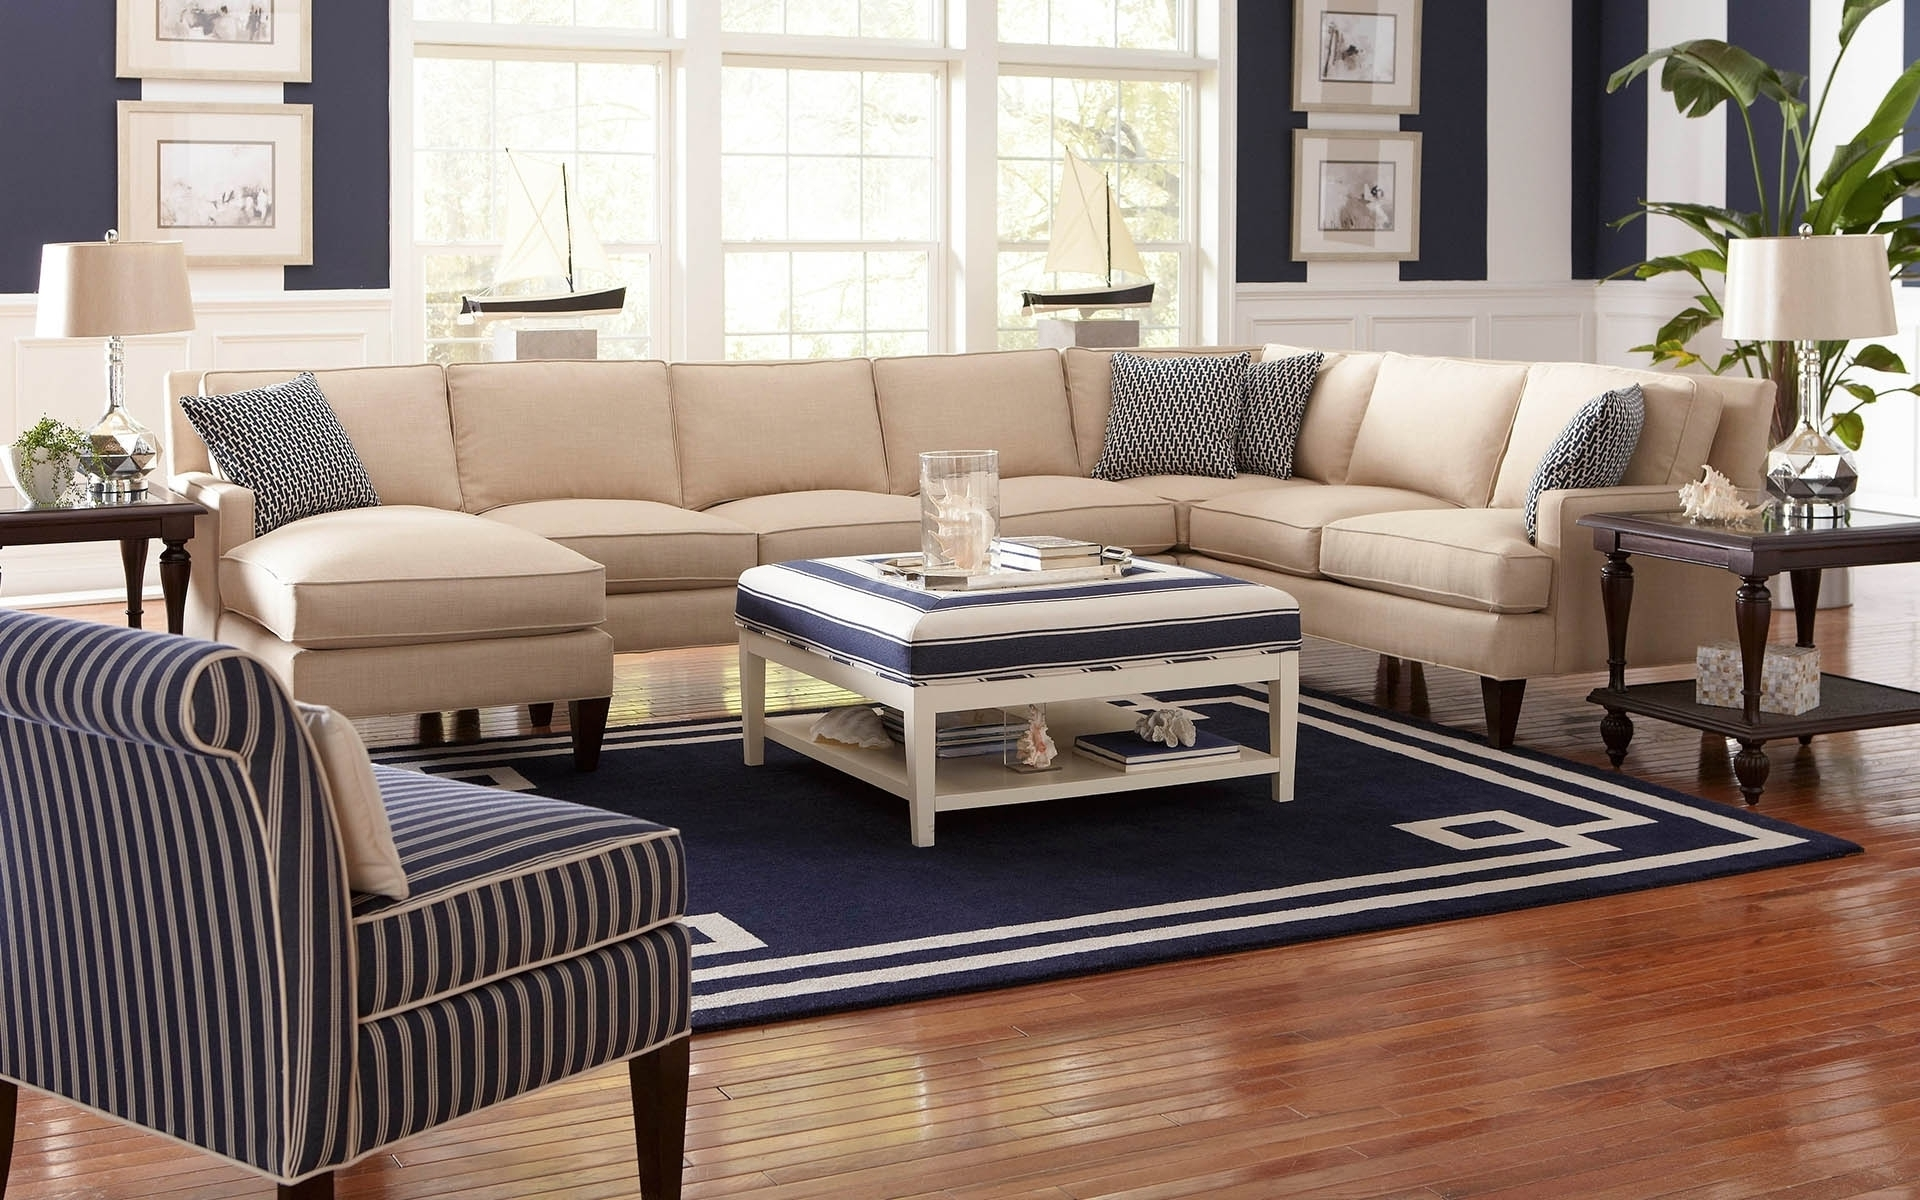 Most Recently Released Braxton Sectional Sofas With Regard To Sofa : Amazing Braxton Sectional Sofa Beautiful Home Design (View 16 of 20)